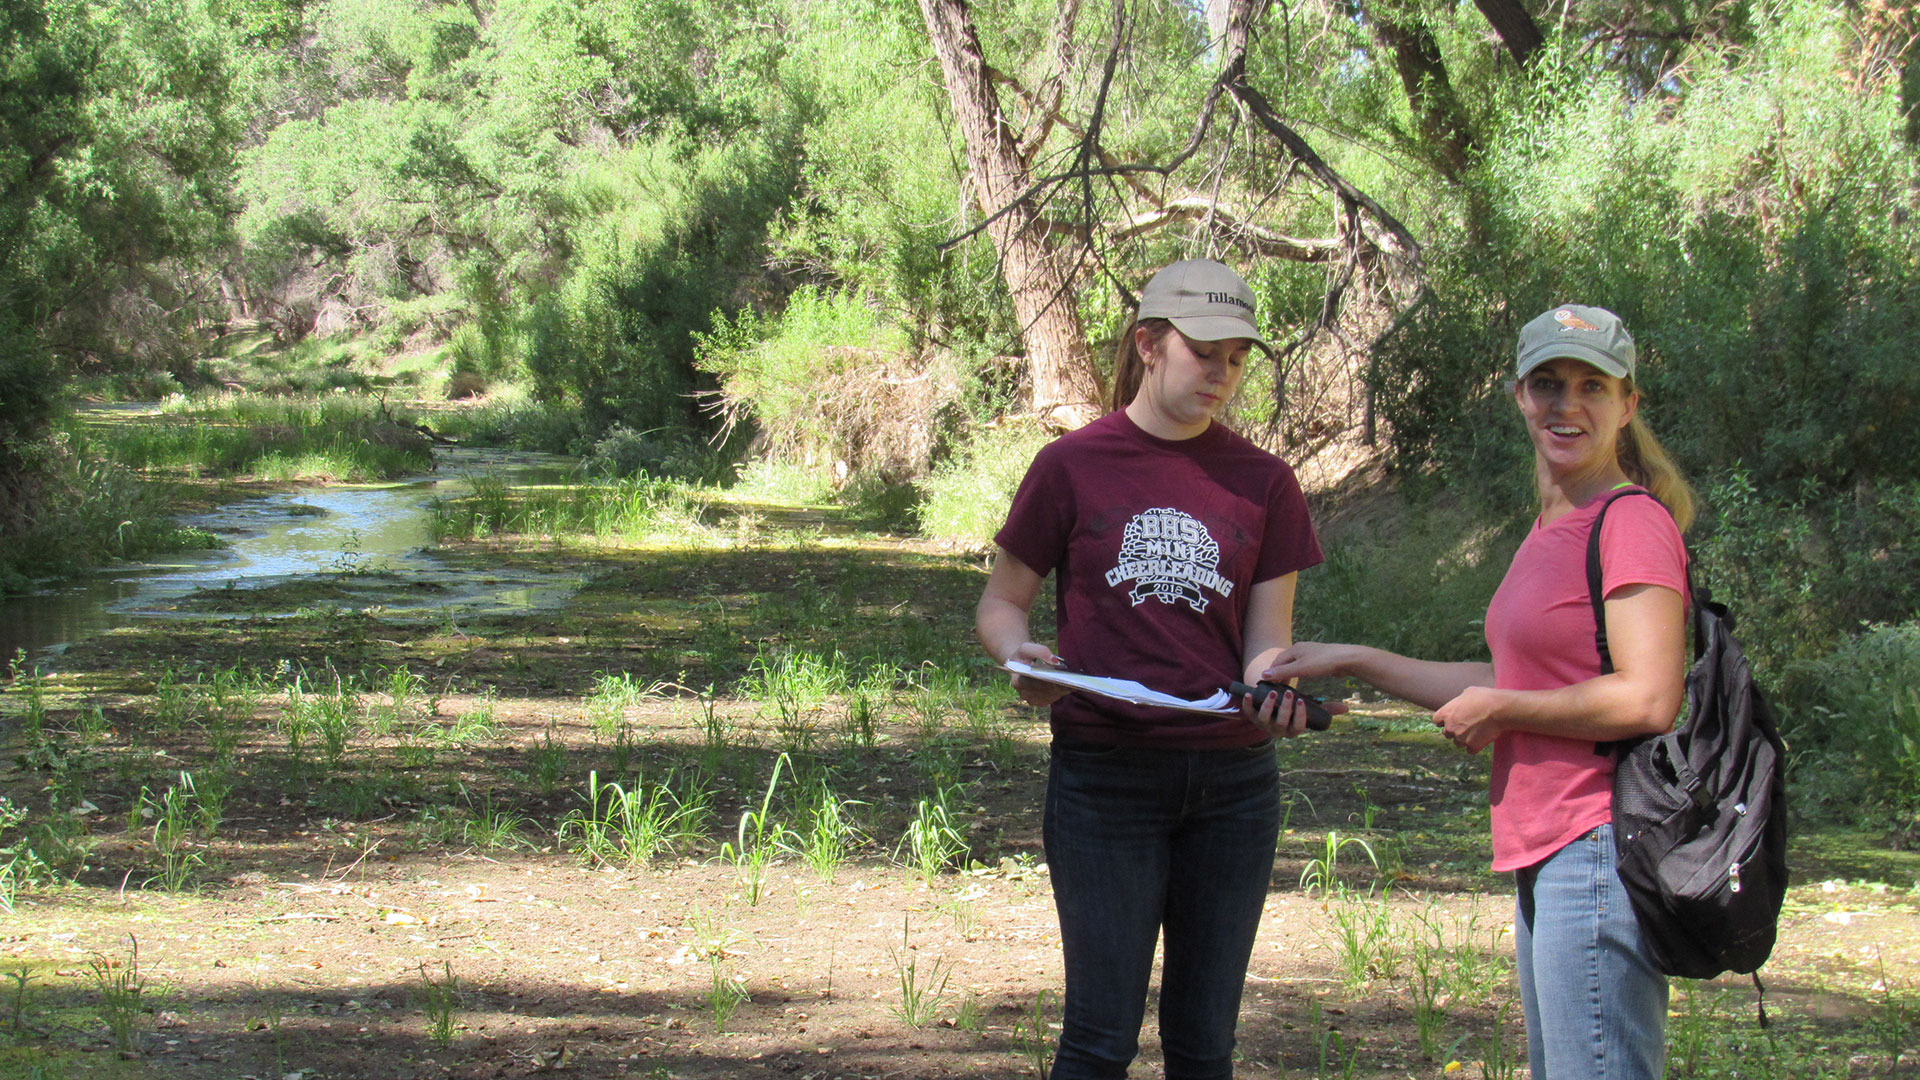 Volunteers Sara Ransom and Kaya Foss doing wet-dry mapping on the San Pedro River.